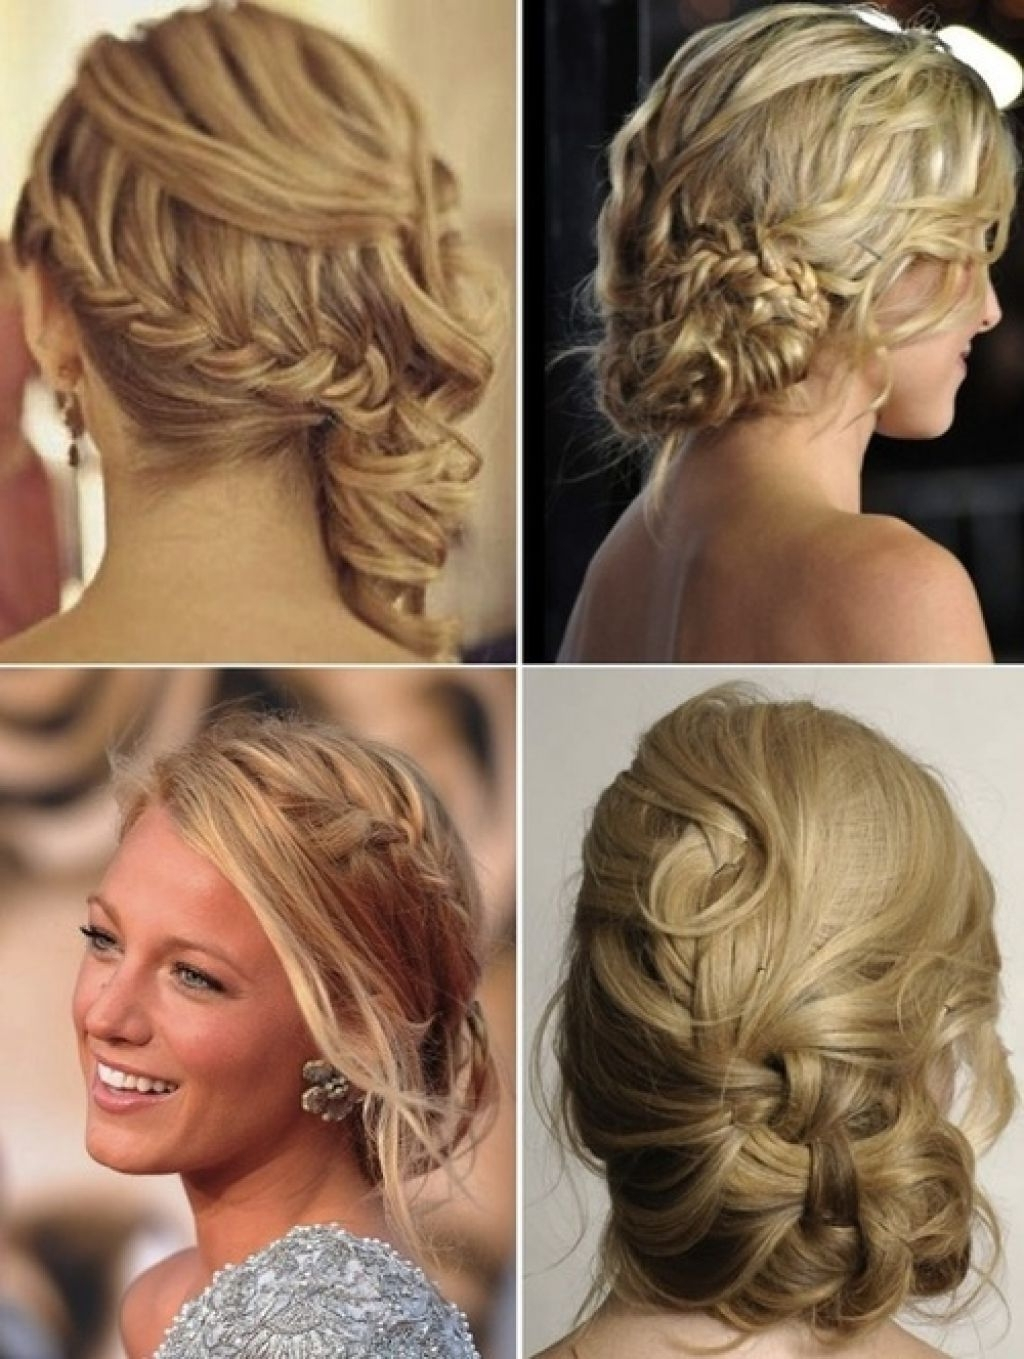 Fashionable Wedding Guest Hairstyles For Medium Length Hair With Fringe Intended For Casual Wedding Hairstyles For Long Hair – Hairstyle For Women & Man (Gallery 5 of 15)